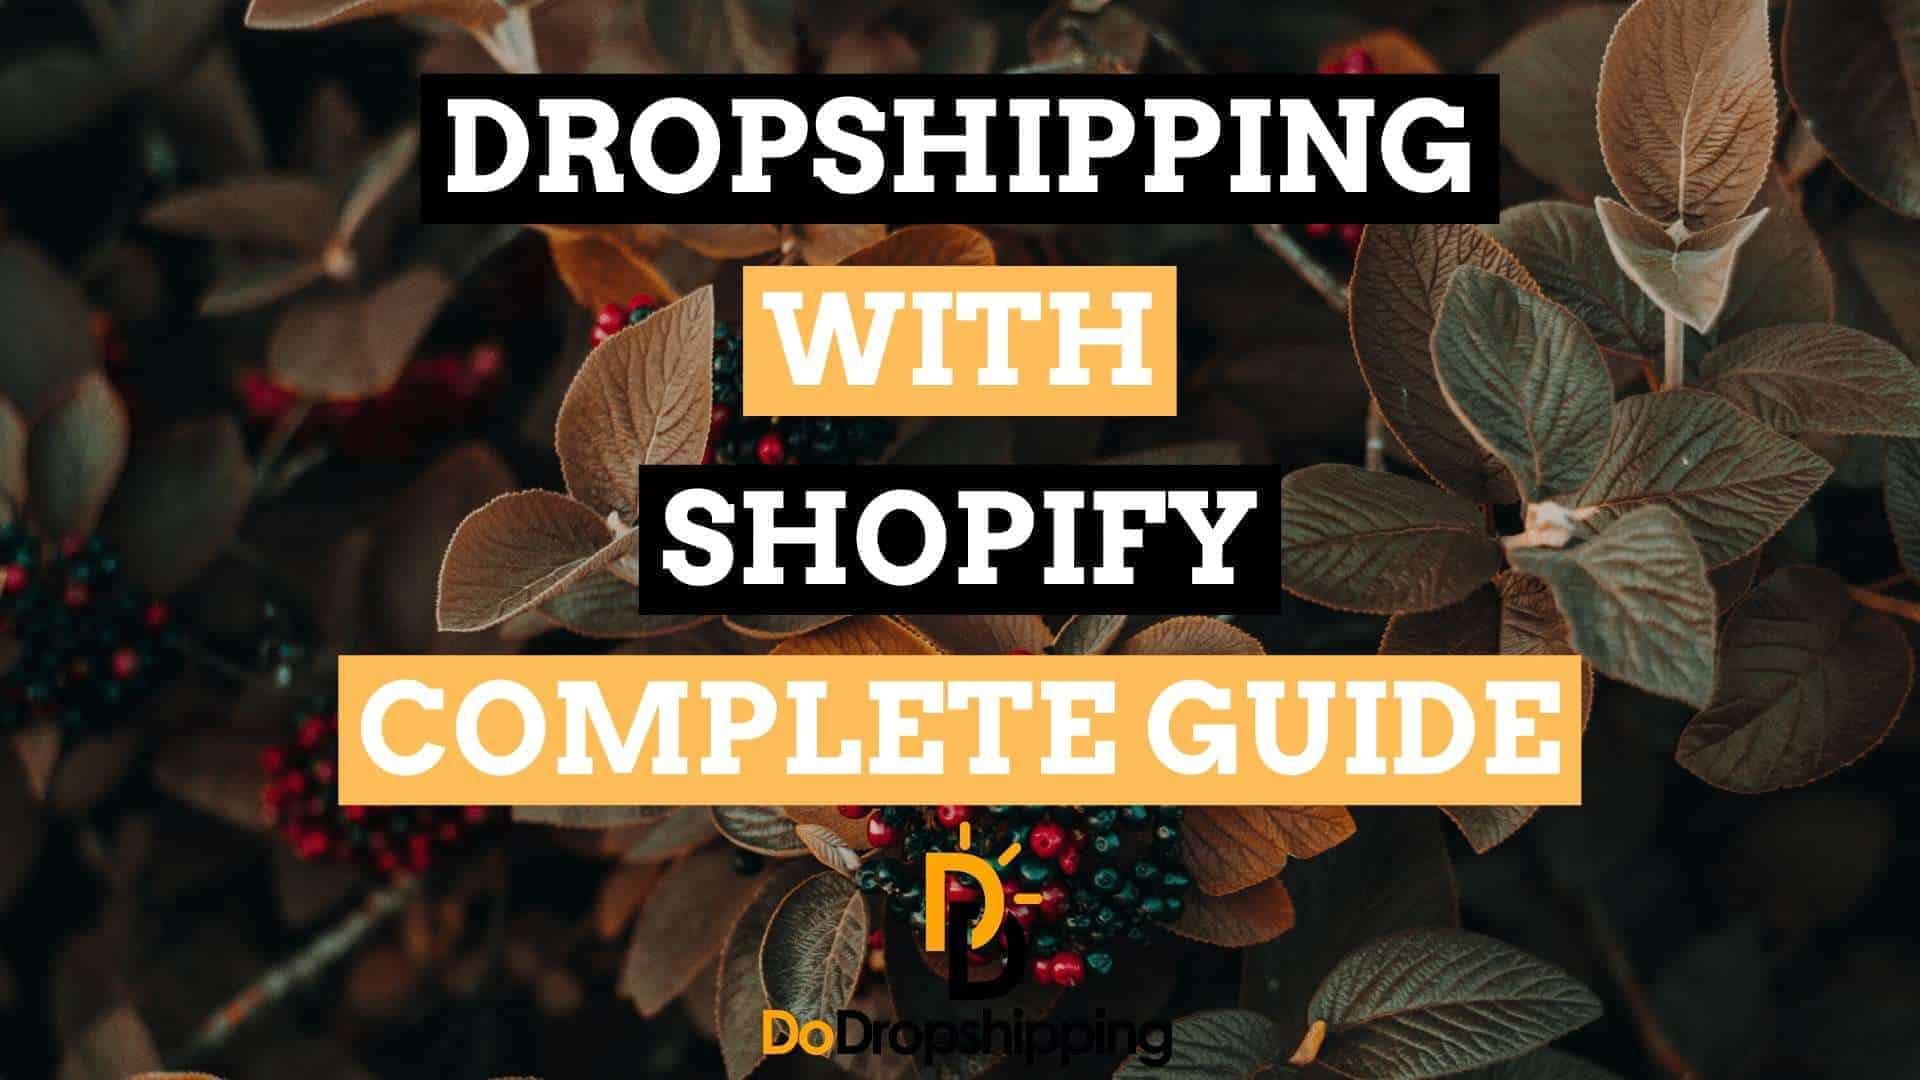 Shopify Dropshipping Complete Guide 2019: Create Your Own Store